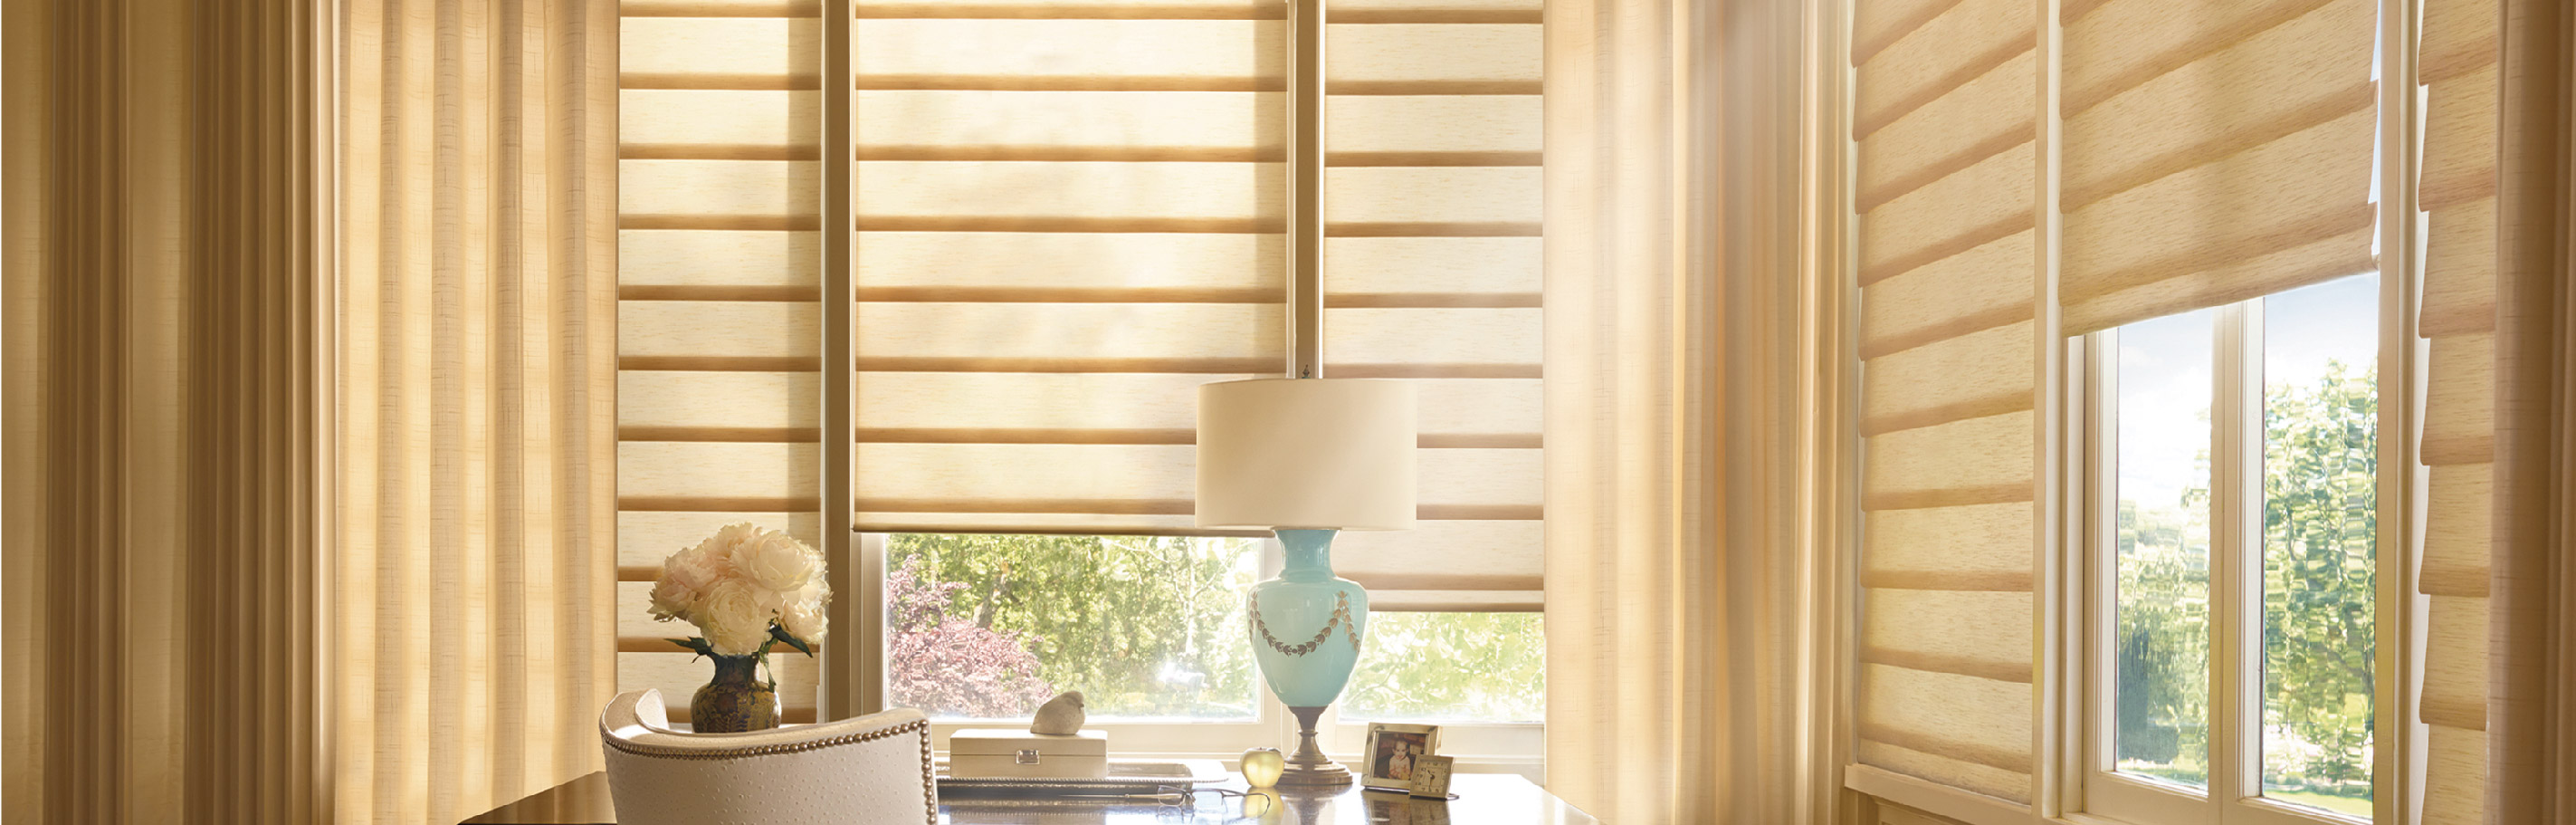 Luxaflex - Products - Softshades and Fabrics - Modern Roman Shades Bottom